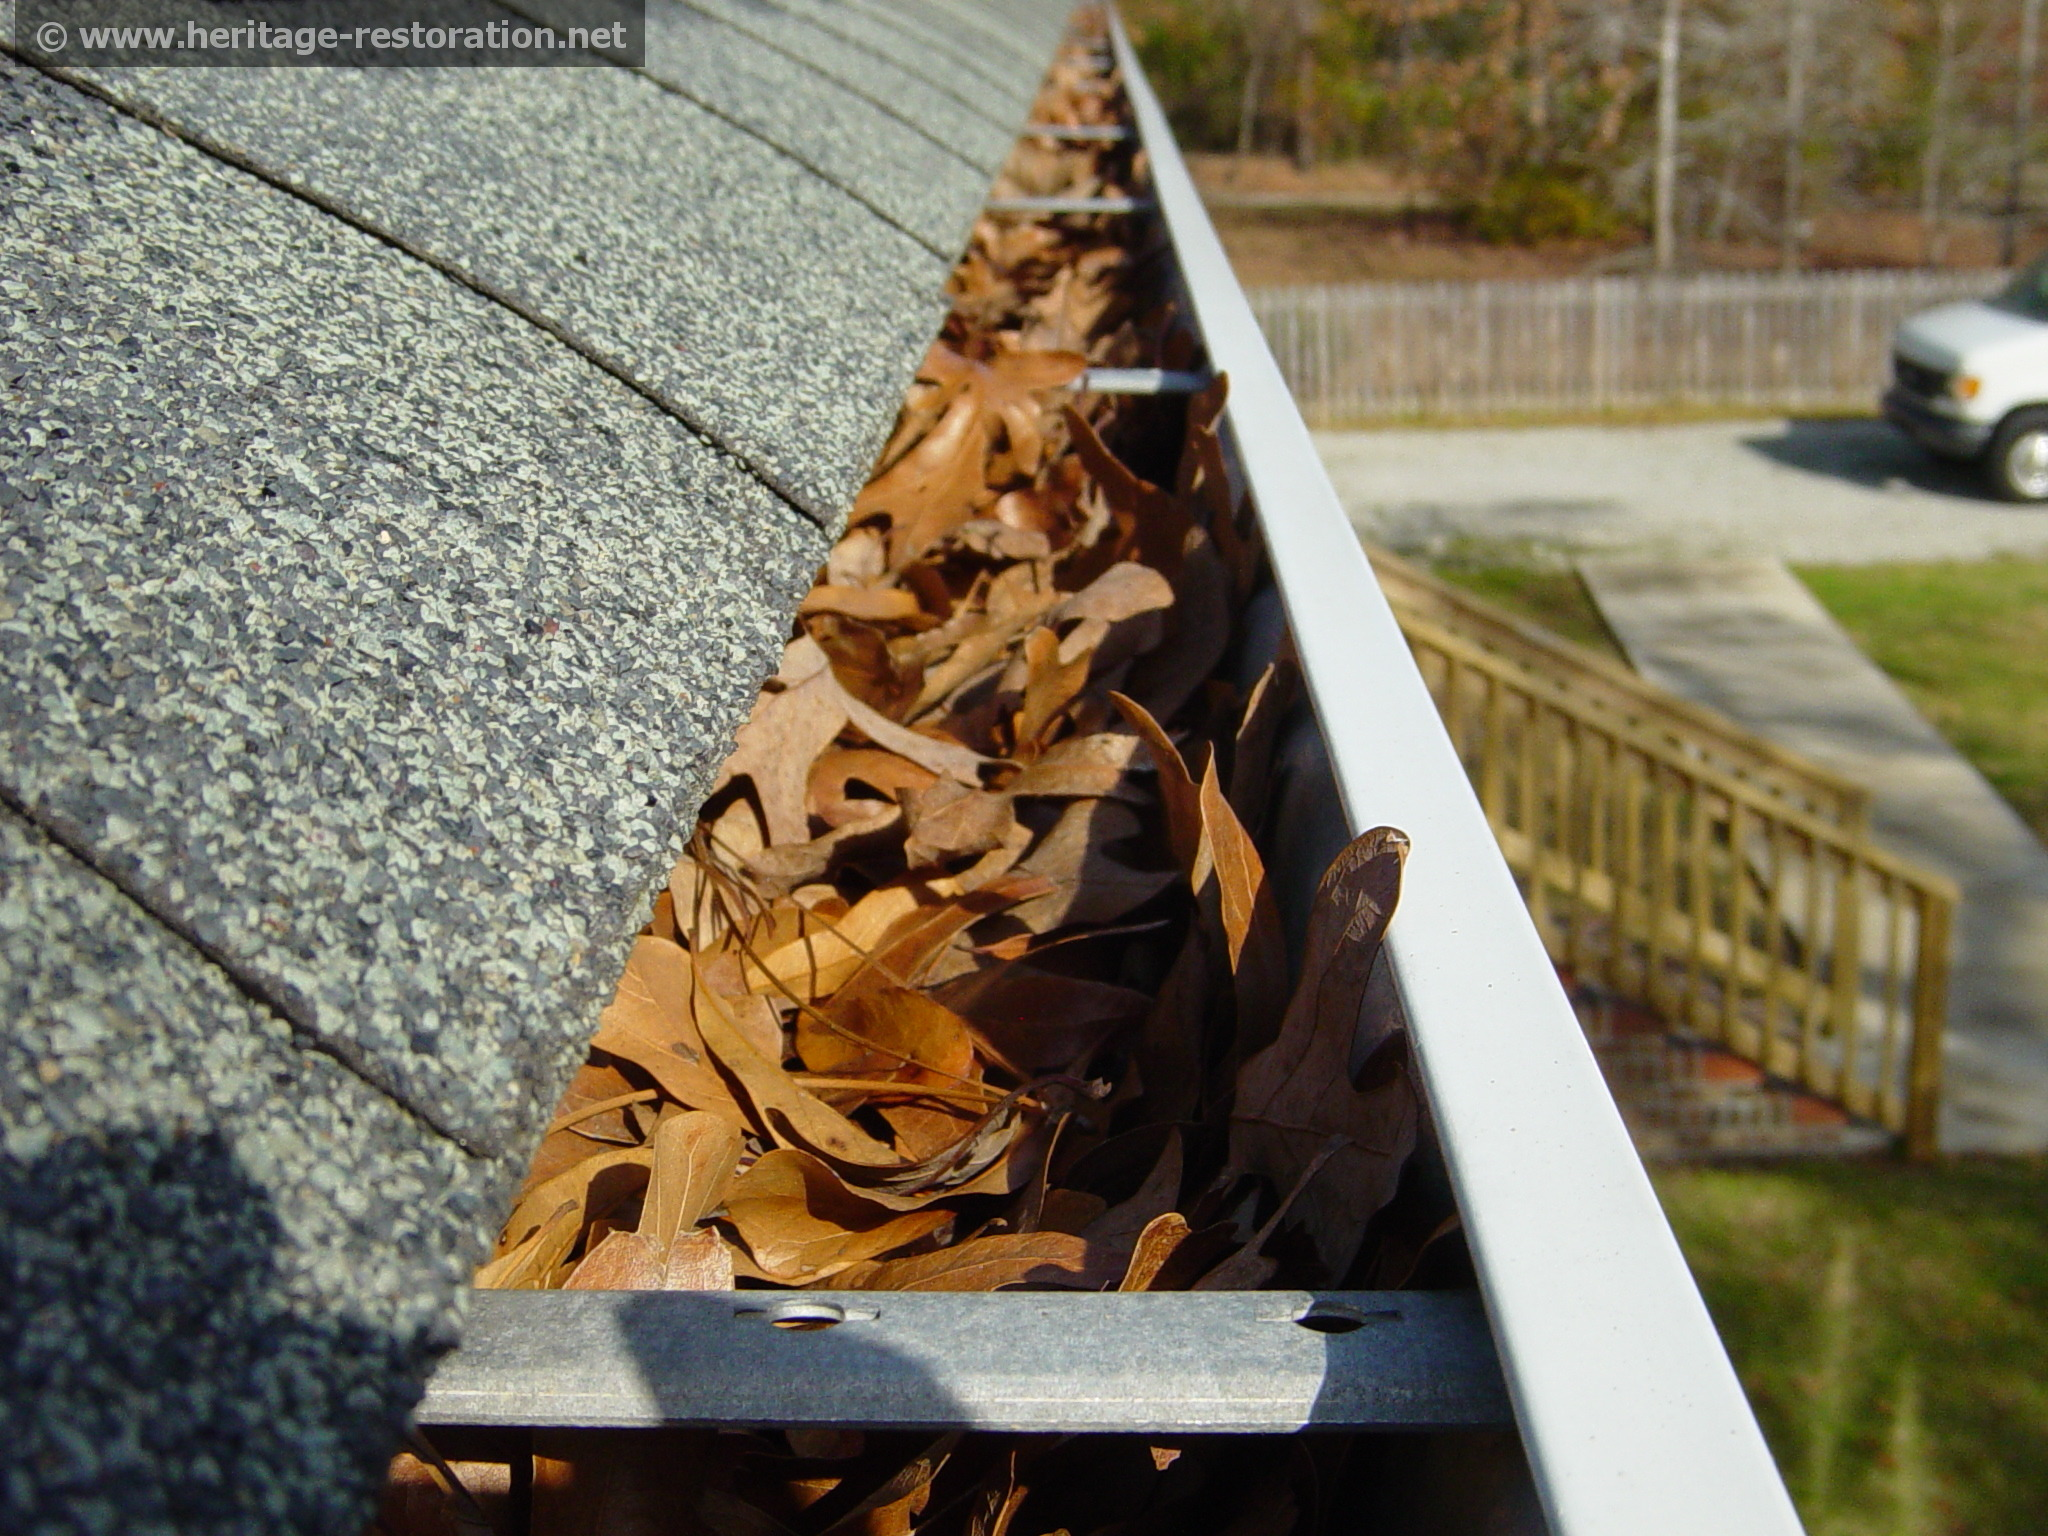 Gutter Cleaning - Ann Arbor, Michigan - A2HomePros Replaceme